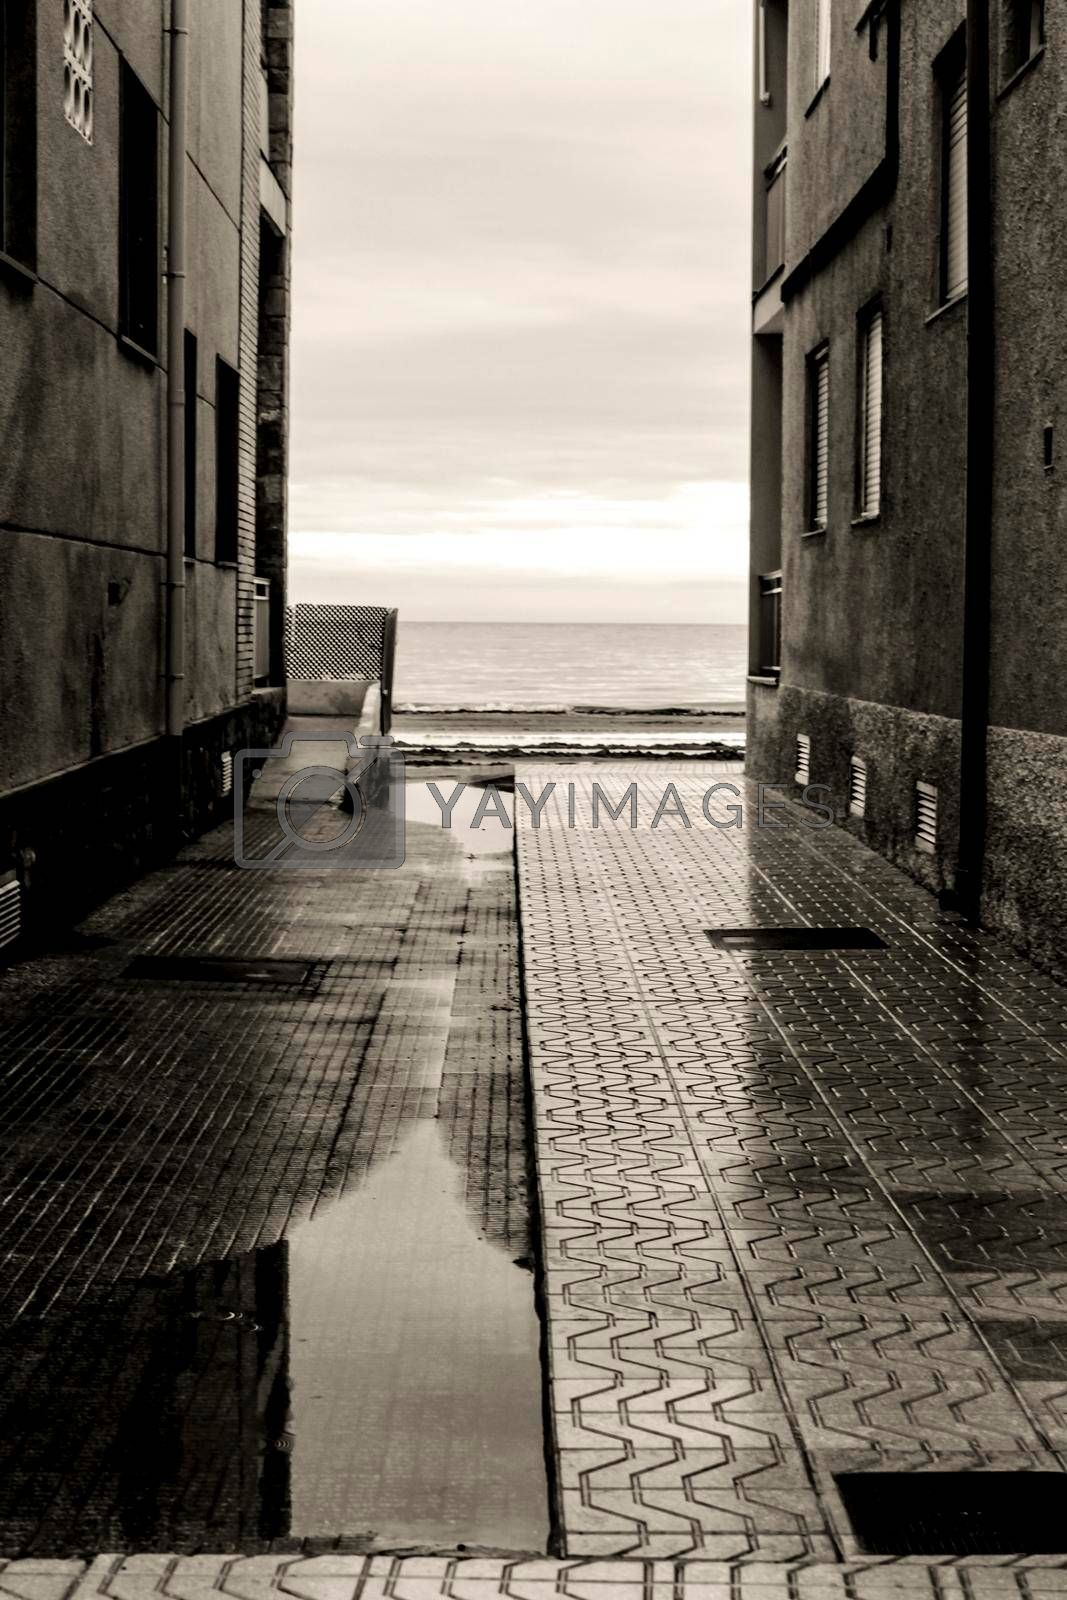 Lonely Little street between buildings facing the sea after a rainy day. Black and white Photography